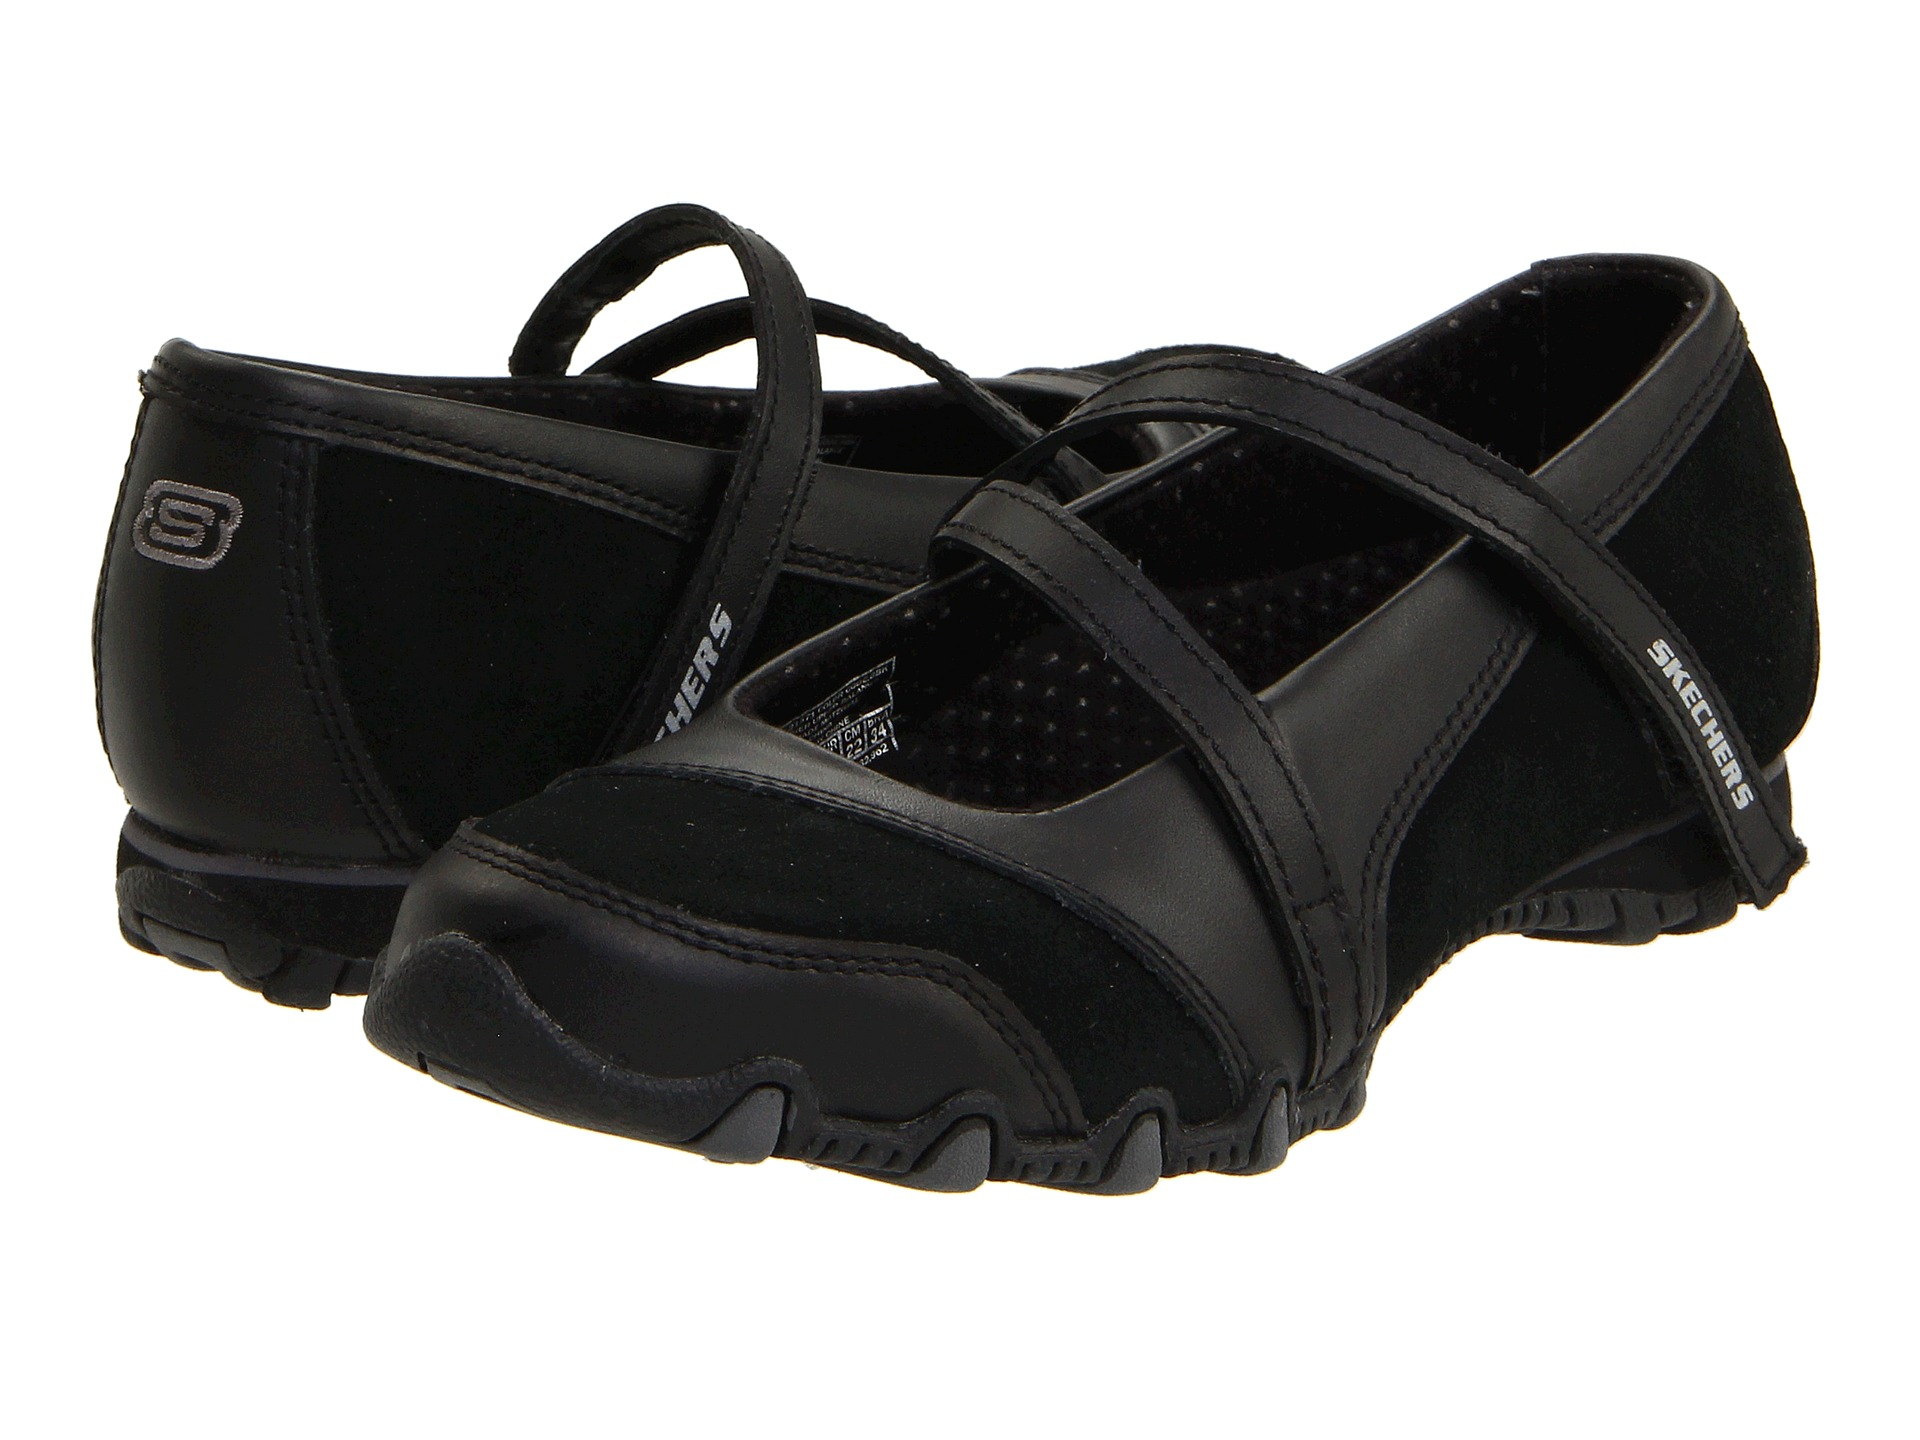 Skechers Biker Shoes Reviews